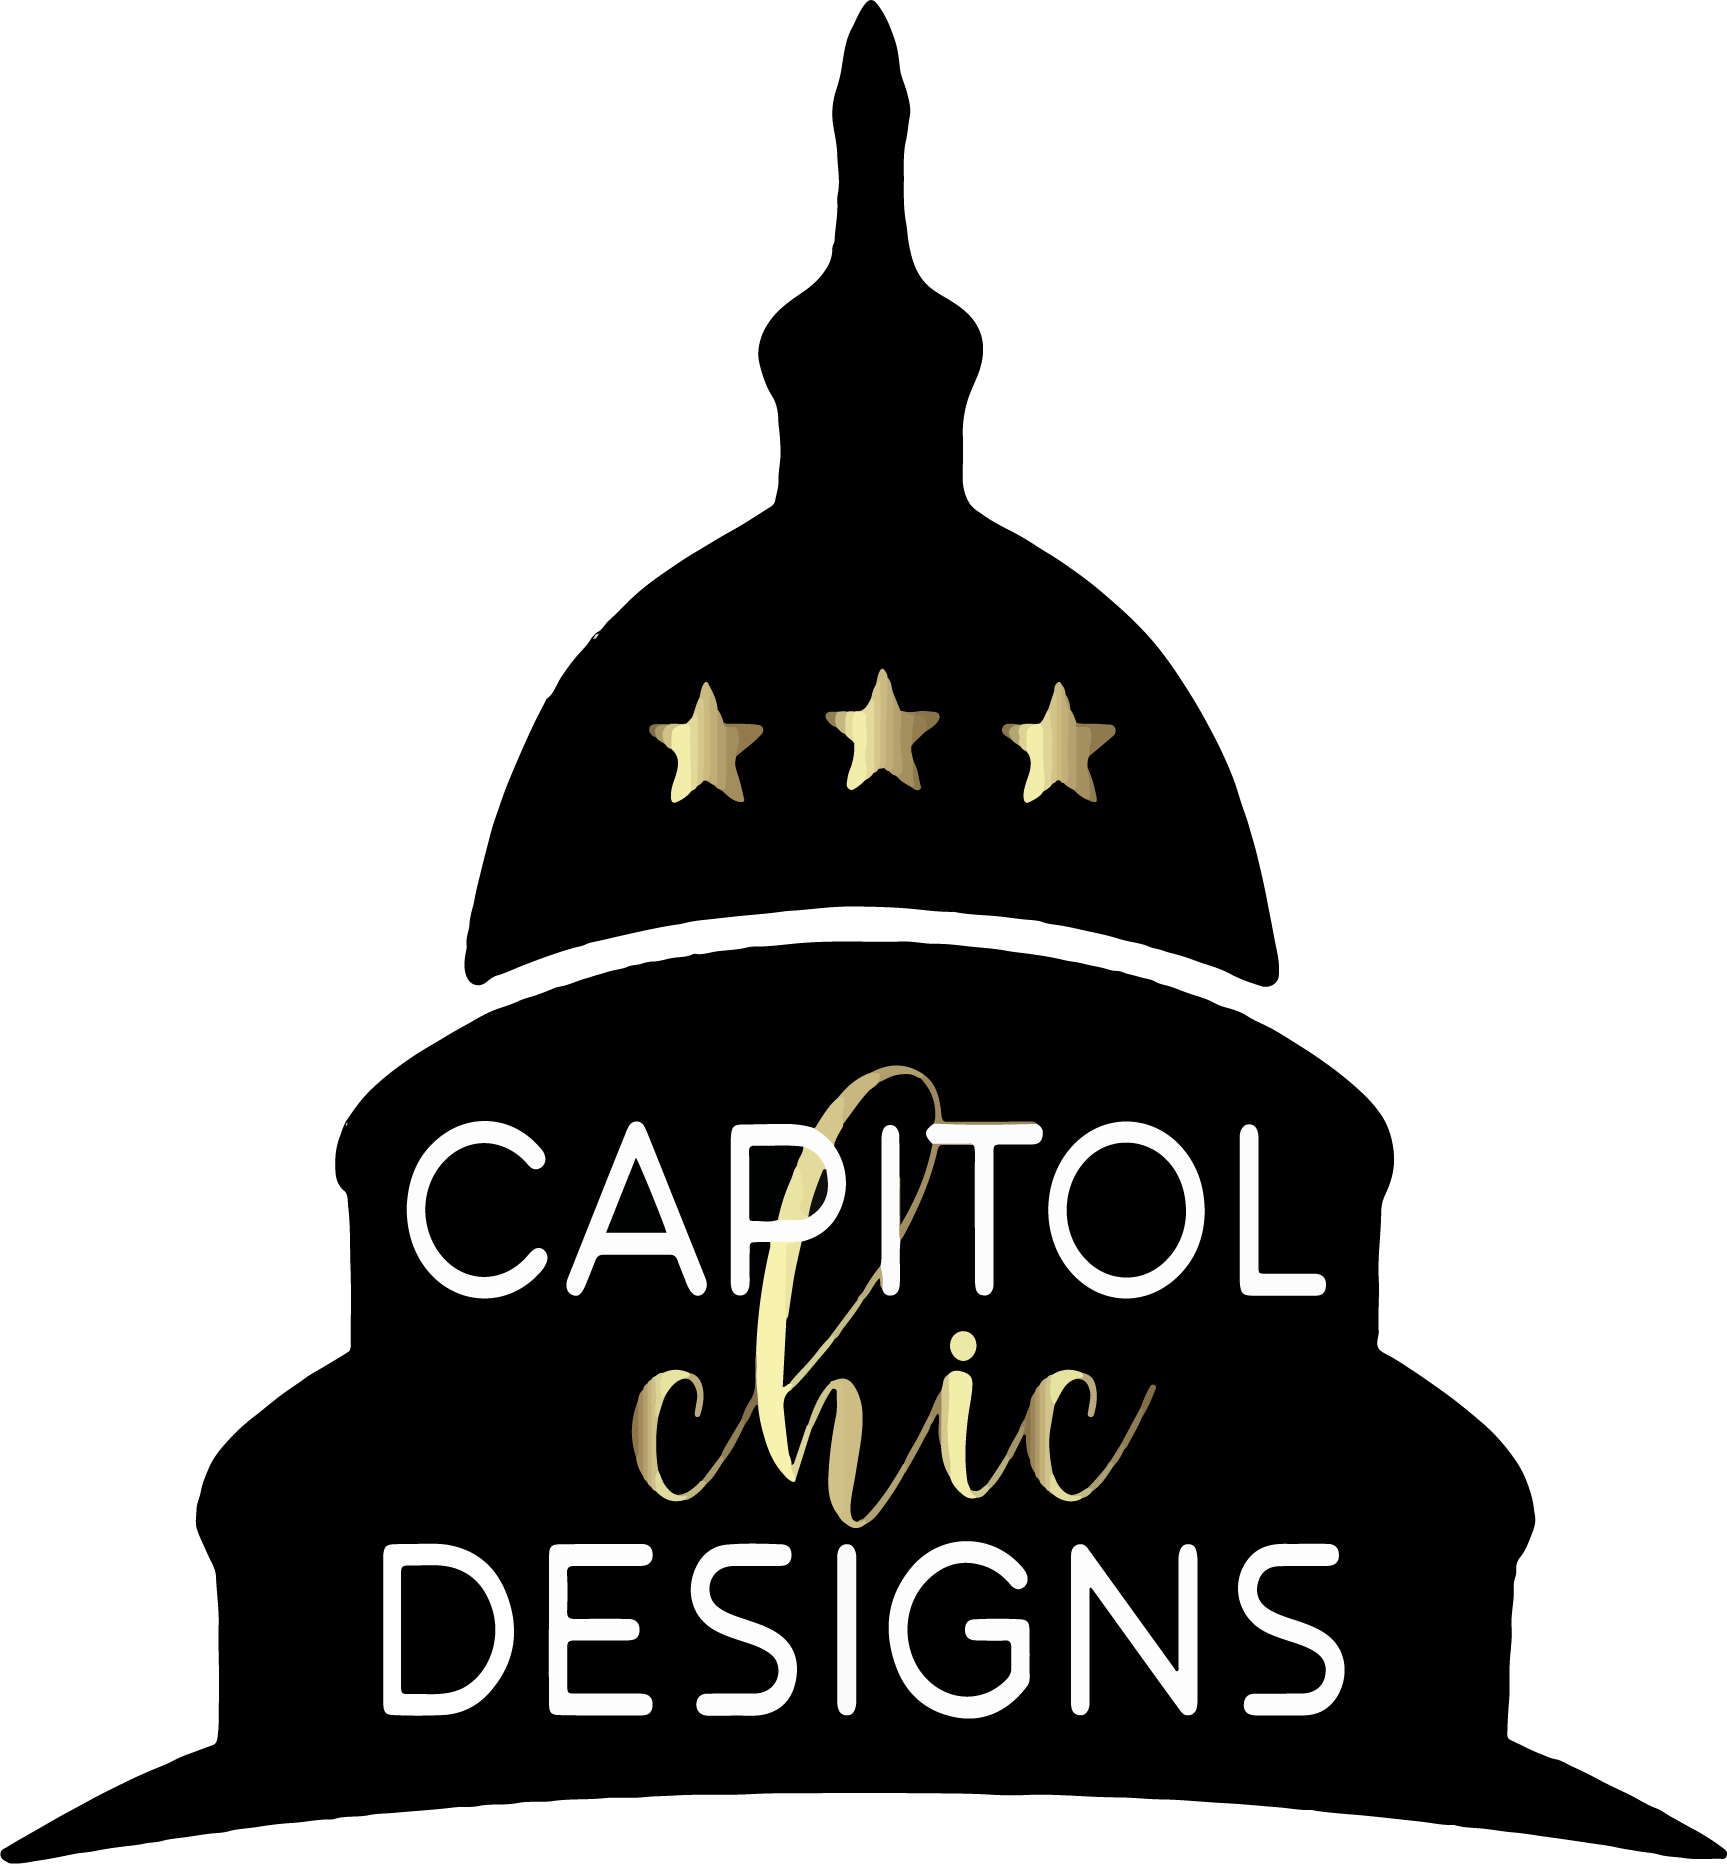 Capitol Chic Designs9C22EB46-98DC-479A-805F-913B2D52F2AE.png